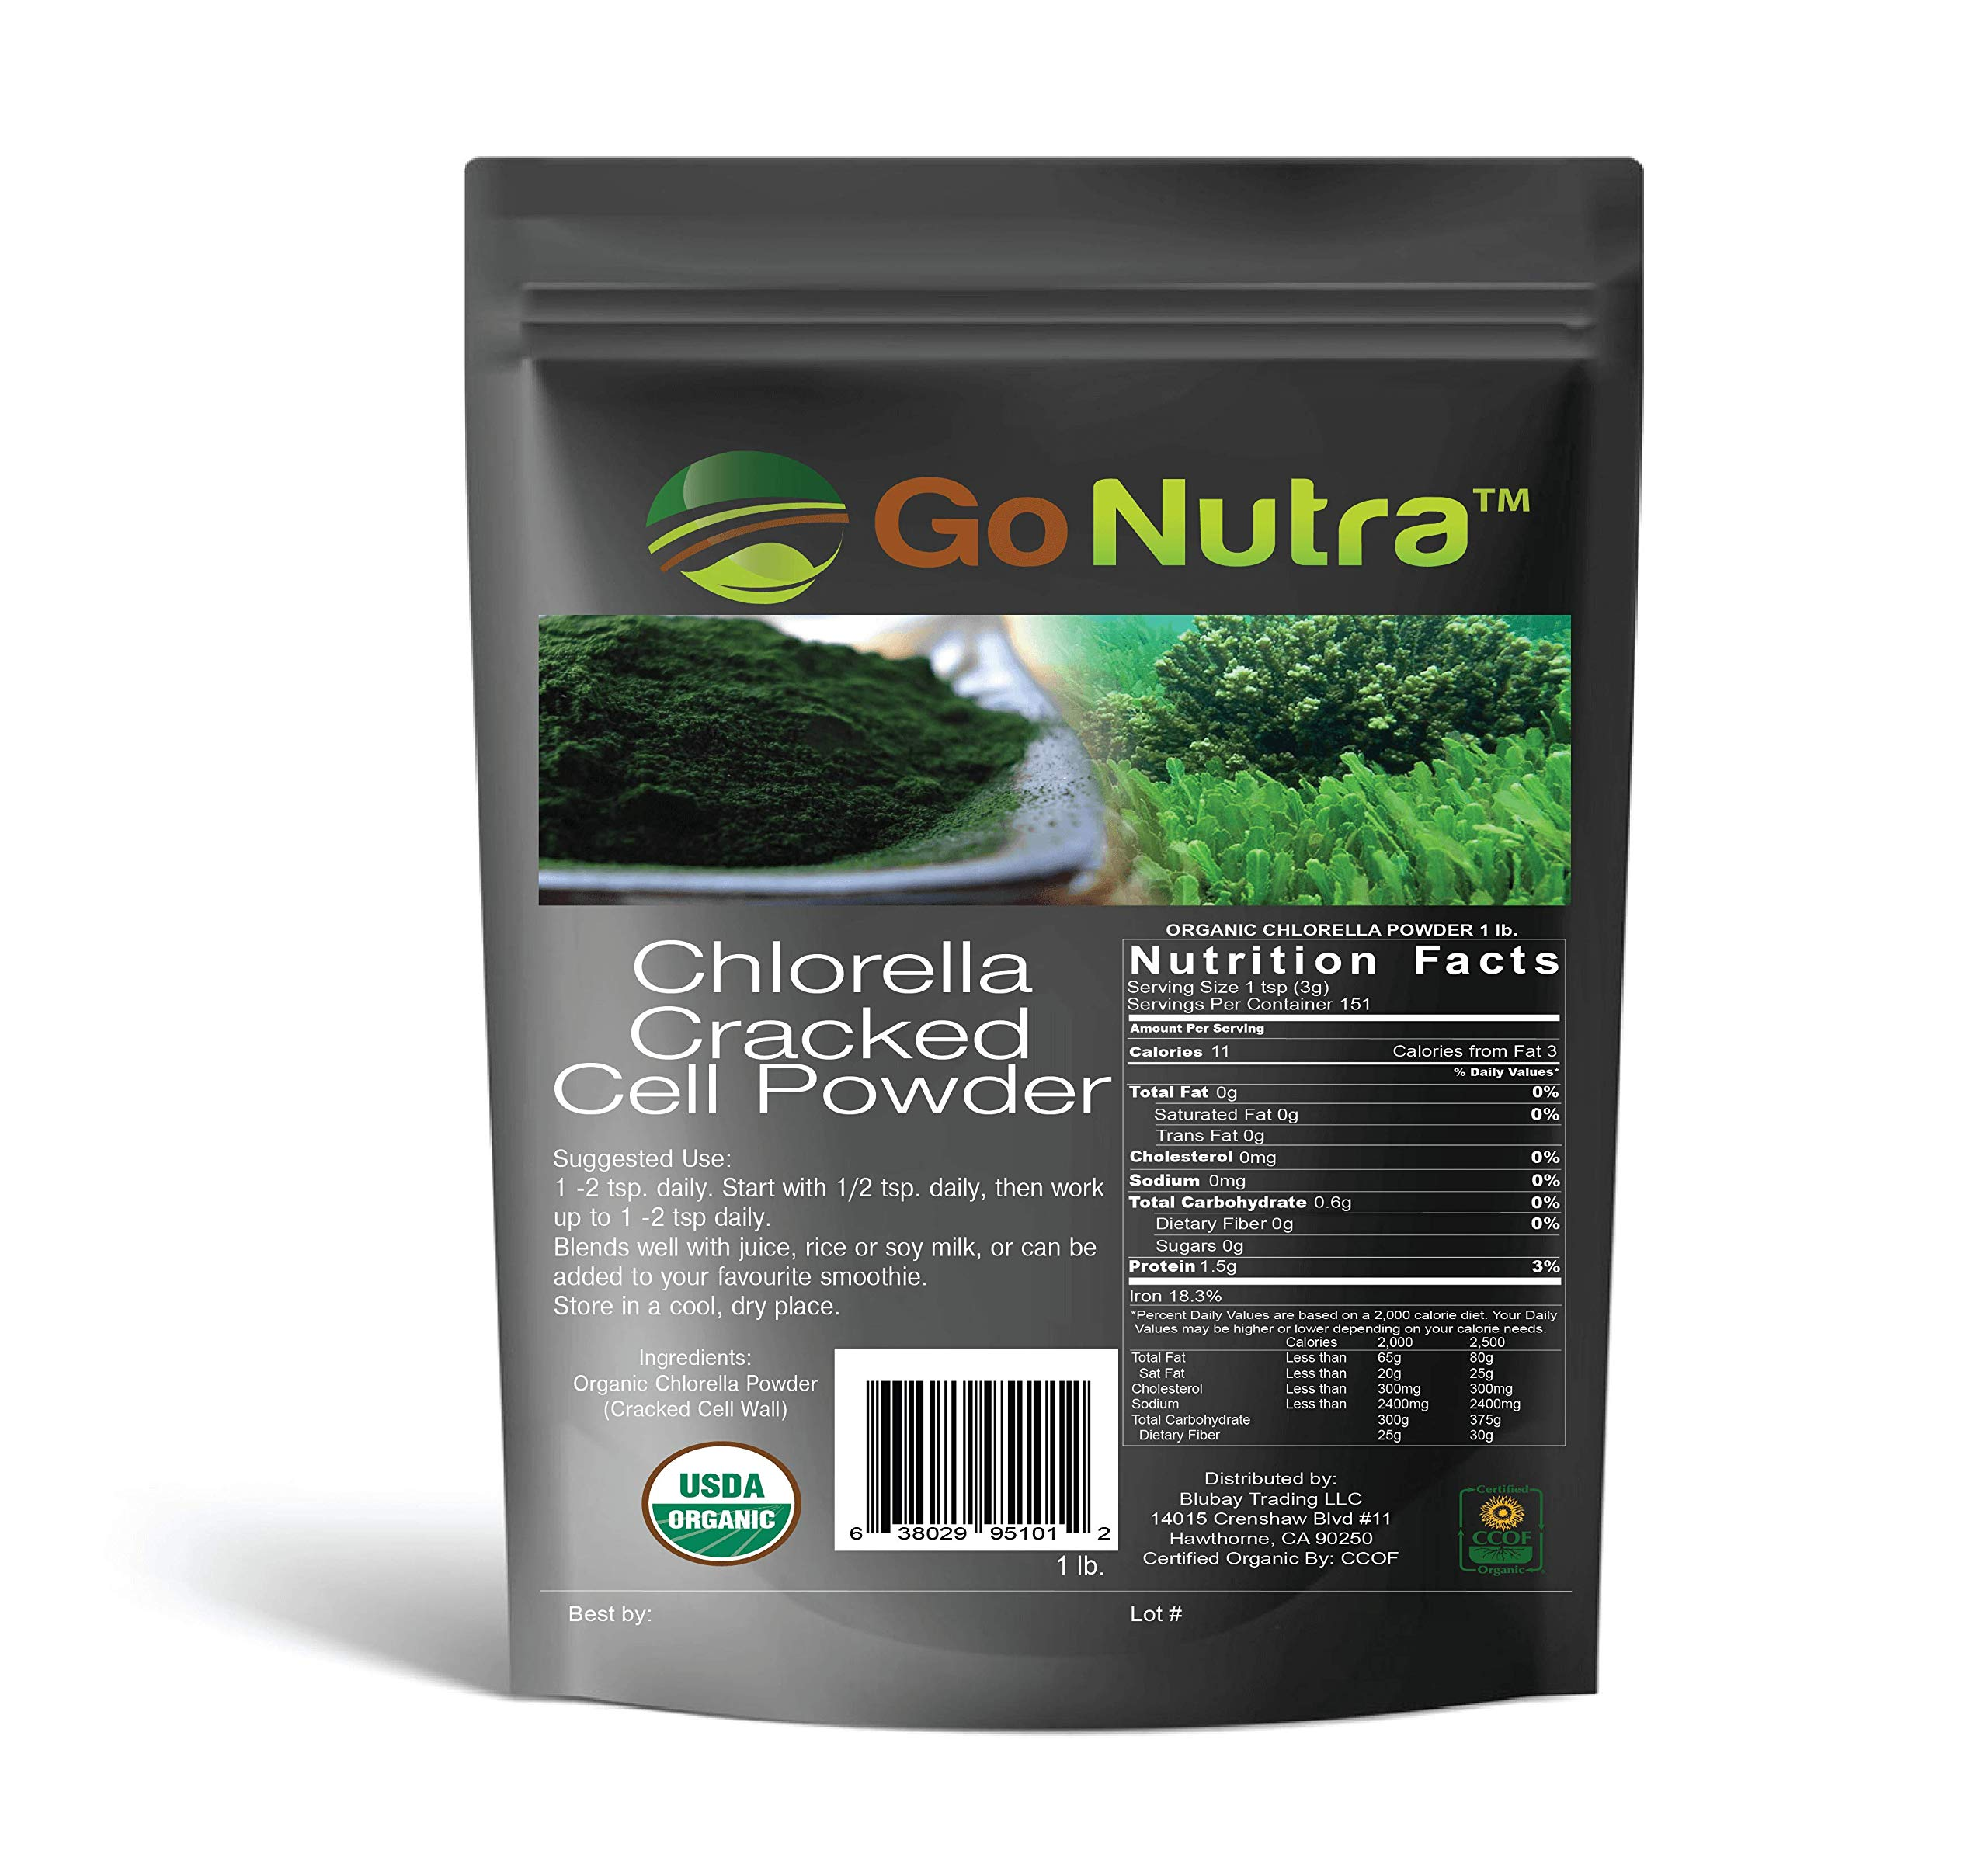 Chlorella Powder 5 lbs Organic, raw, Non-GMO. 100% Pure Cracked Cell Wall Green Superfood High Protein Chlorophyll for Smoothie Vegan Supplement